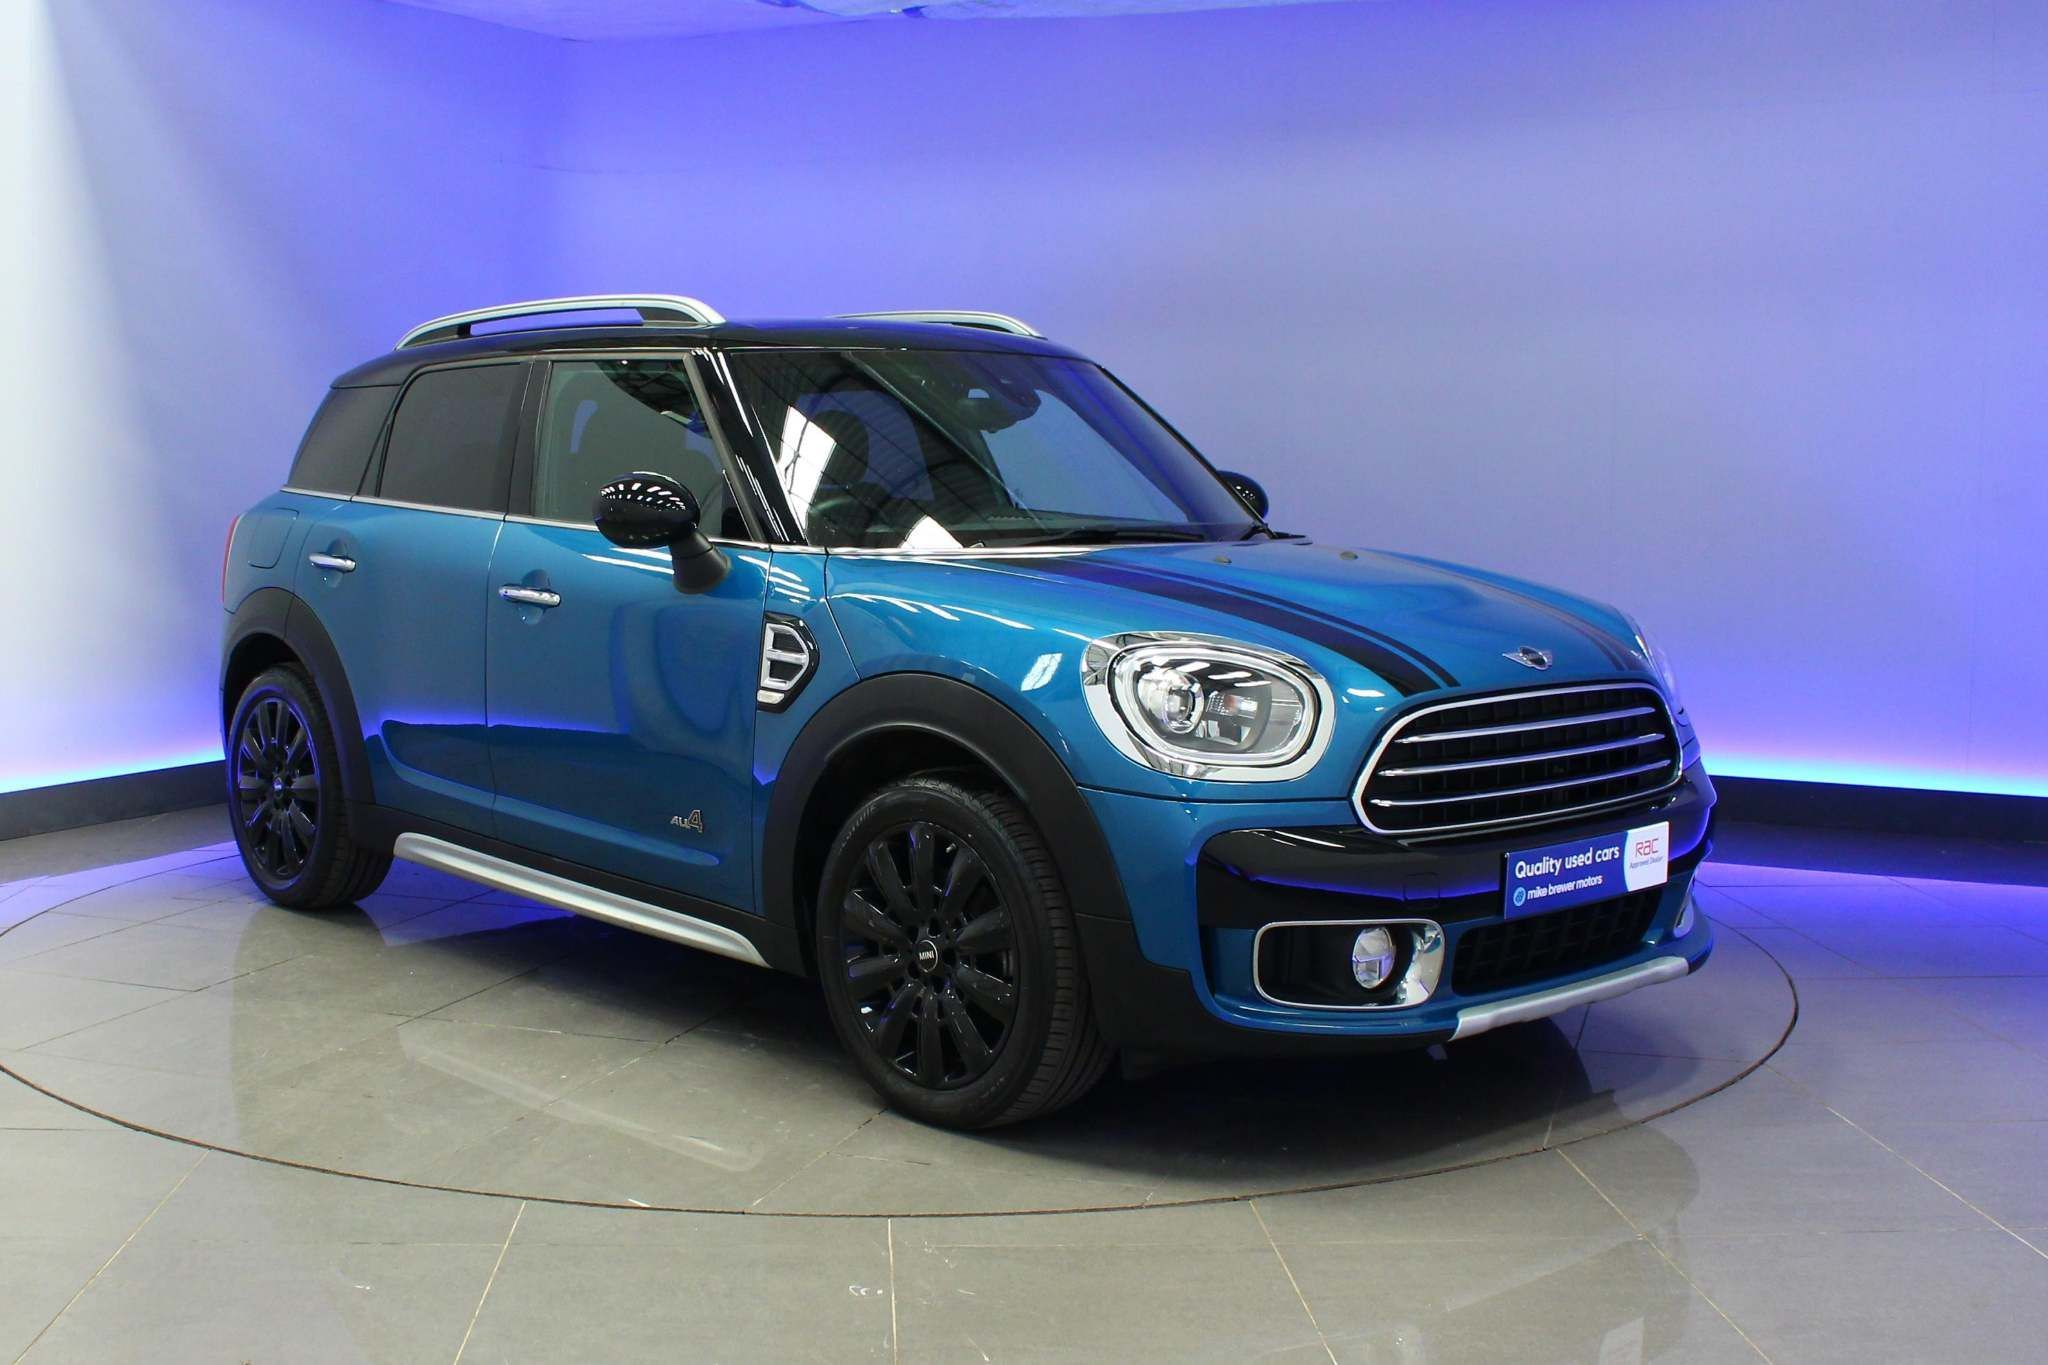 Used MINI Countryman 1.5 Cooper All4 (s/s) 5dr